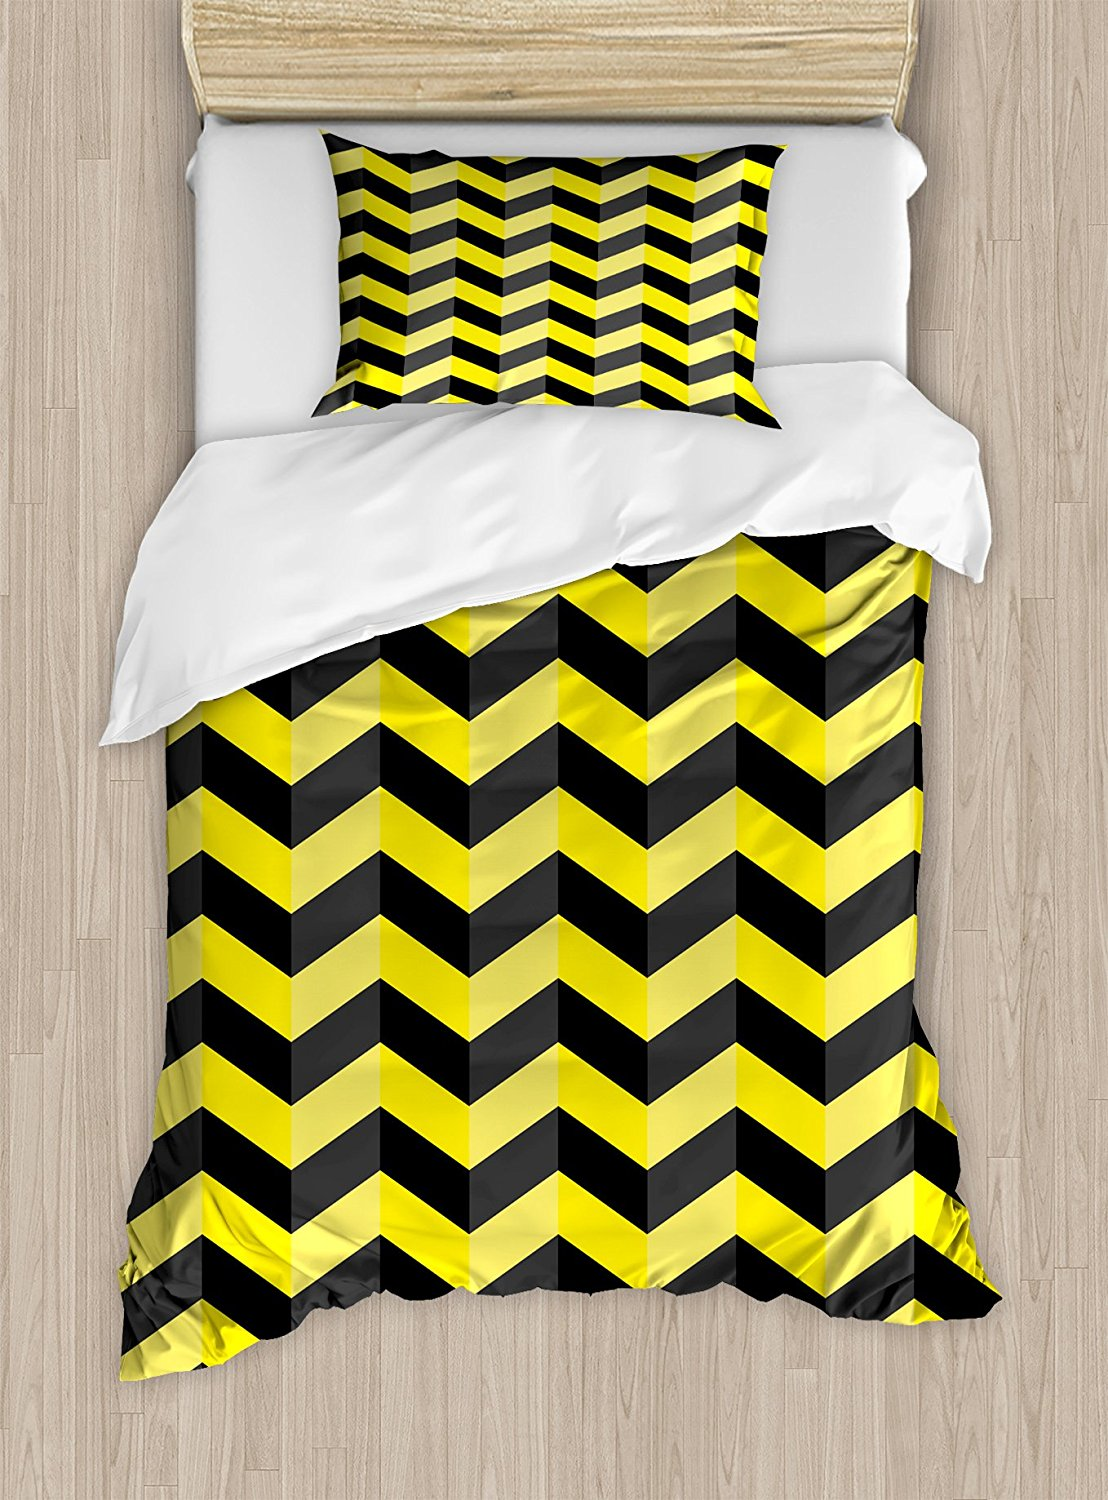 Yellow Chevron Duvet Cover Set Black And Pattern Danger Hazard Warning Sign Stripes Zigzag Bedding In Sets From Home Garden